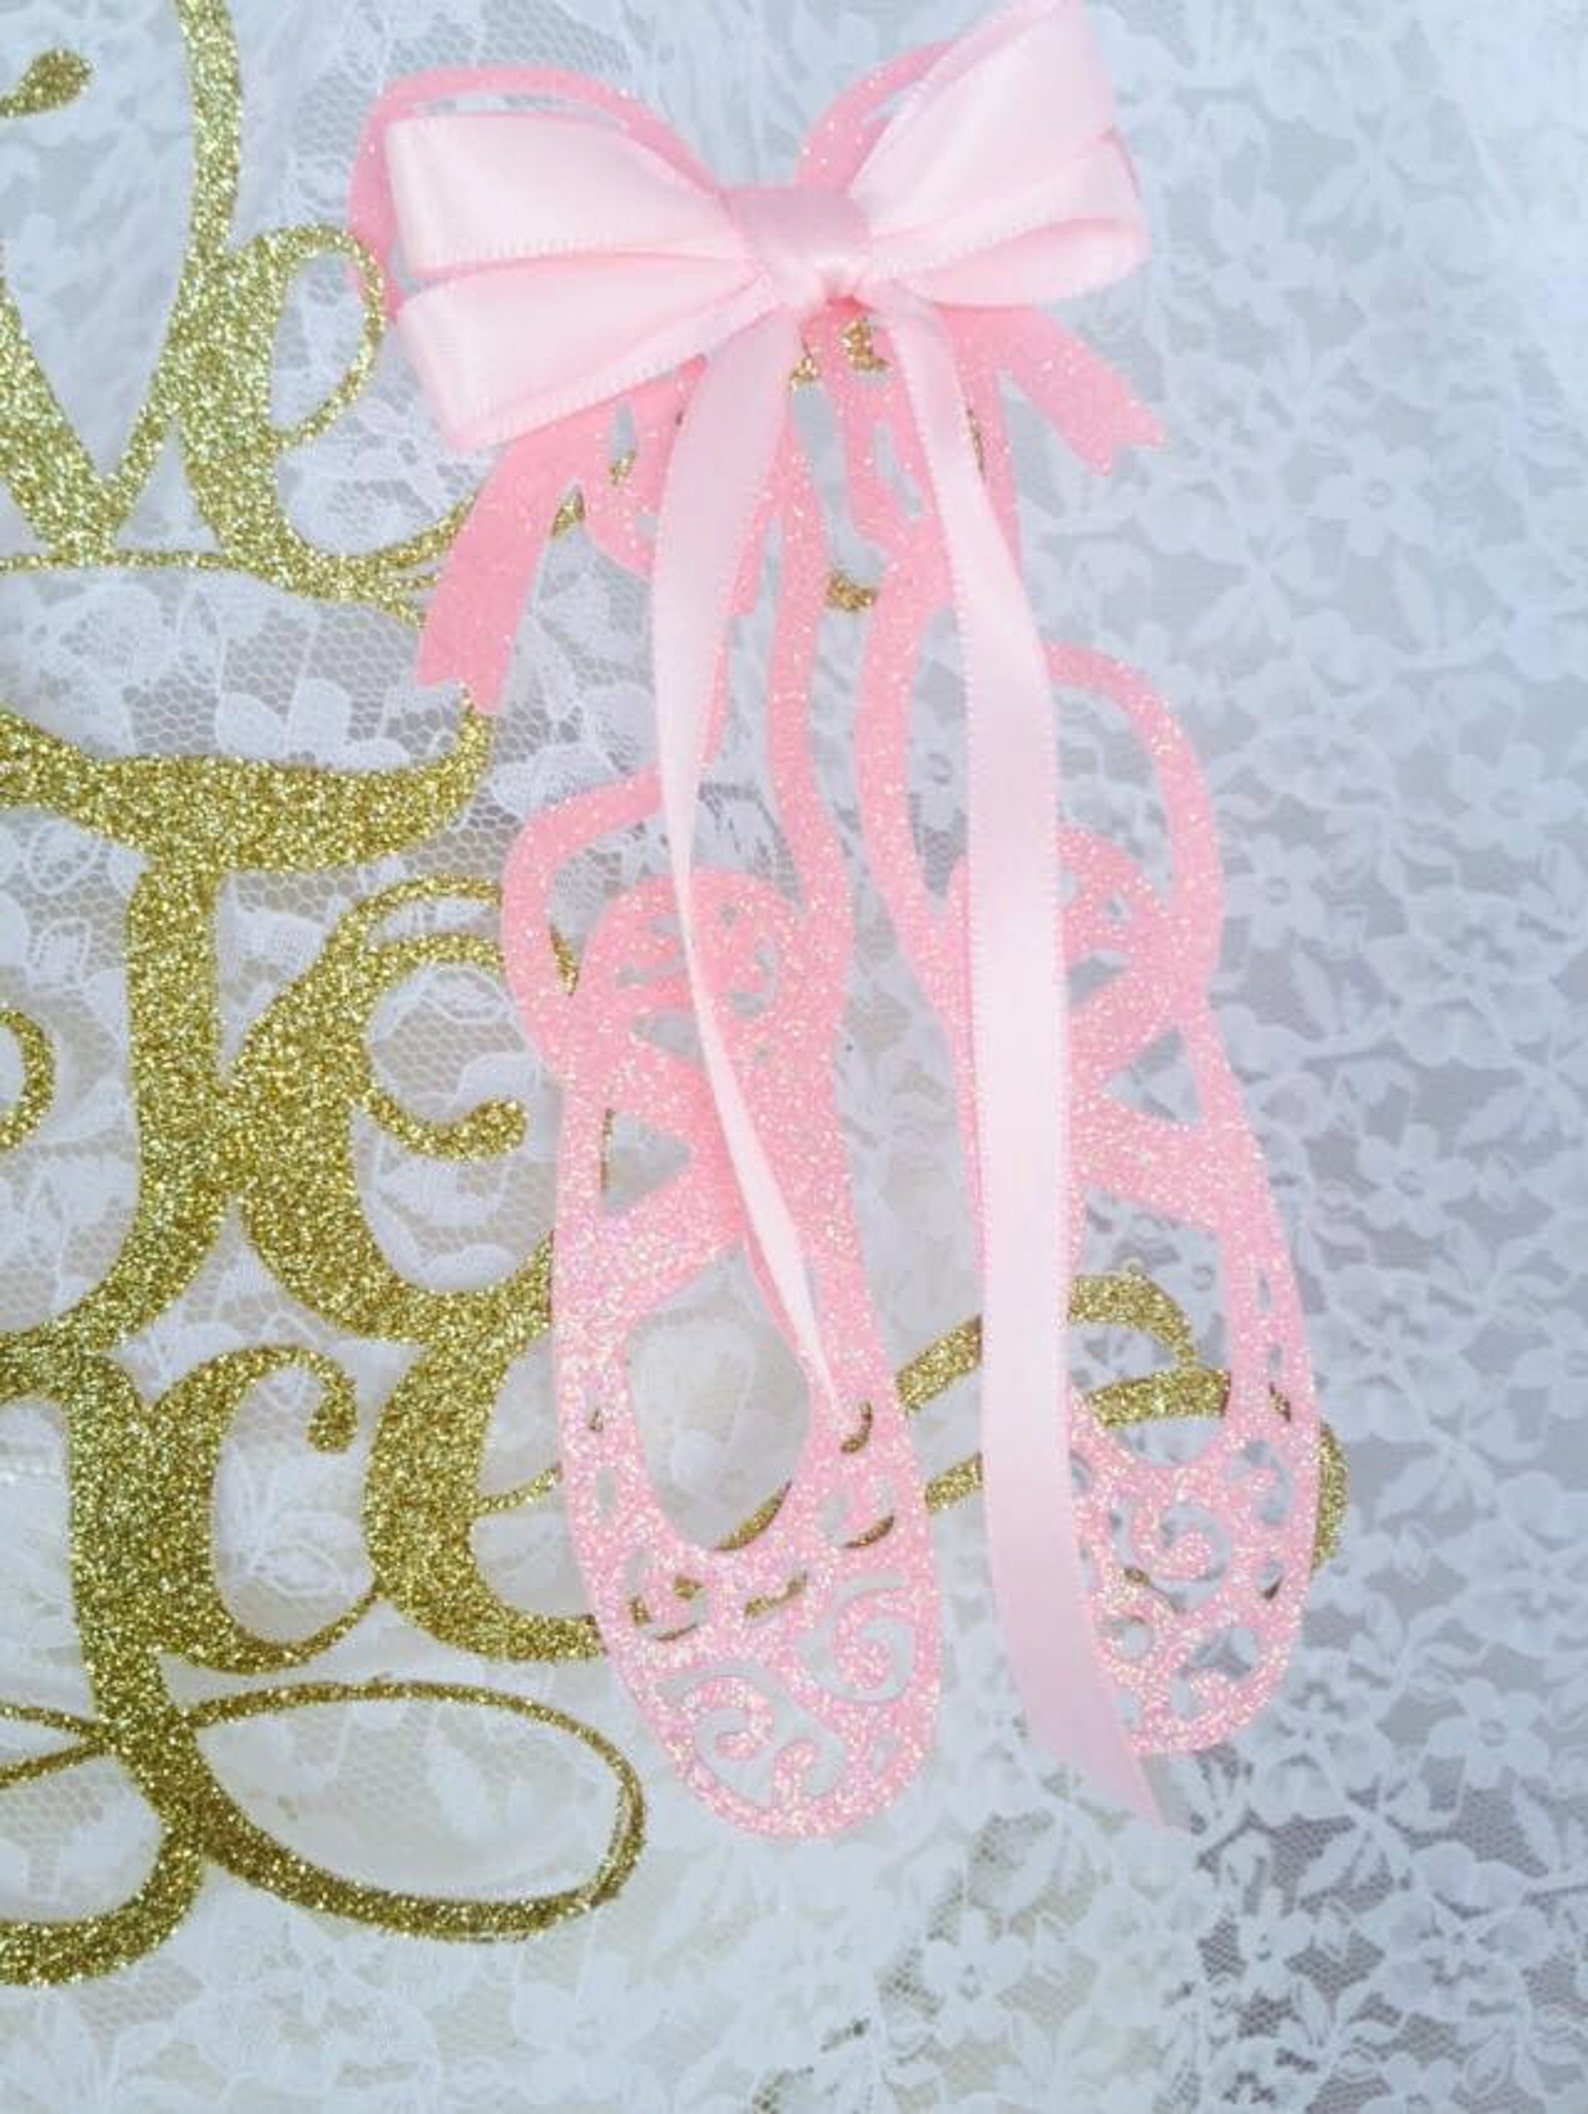 love to dance cake topper - ballerina shoes - ballet event - pink and gold decorations - little girl ballerina - custom colors -